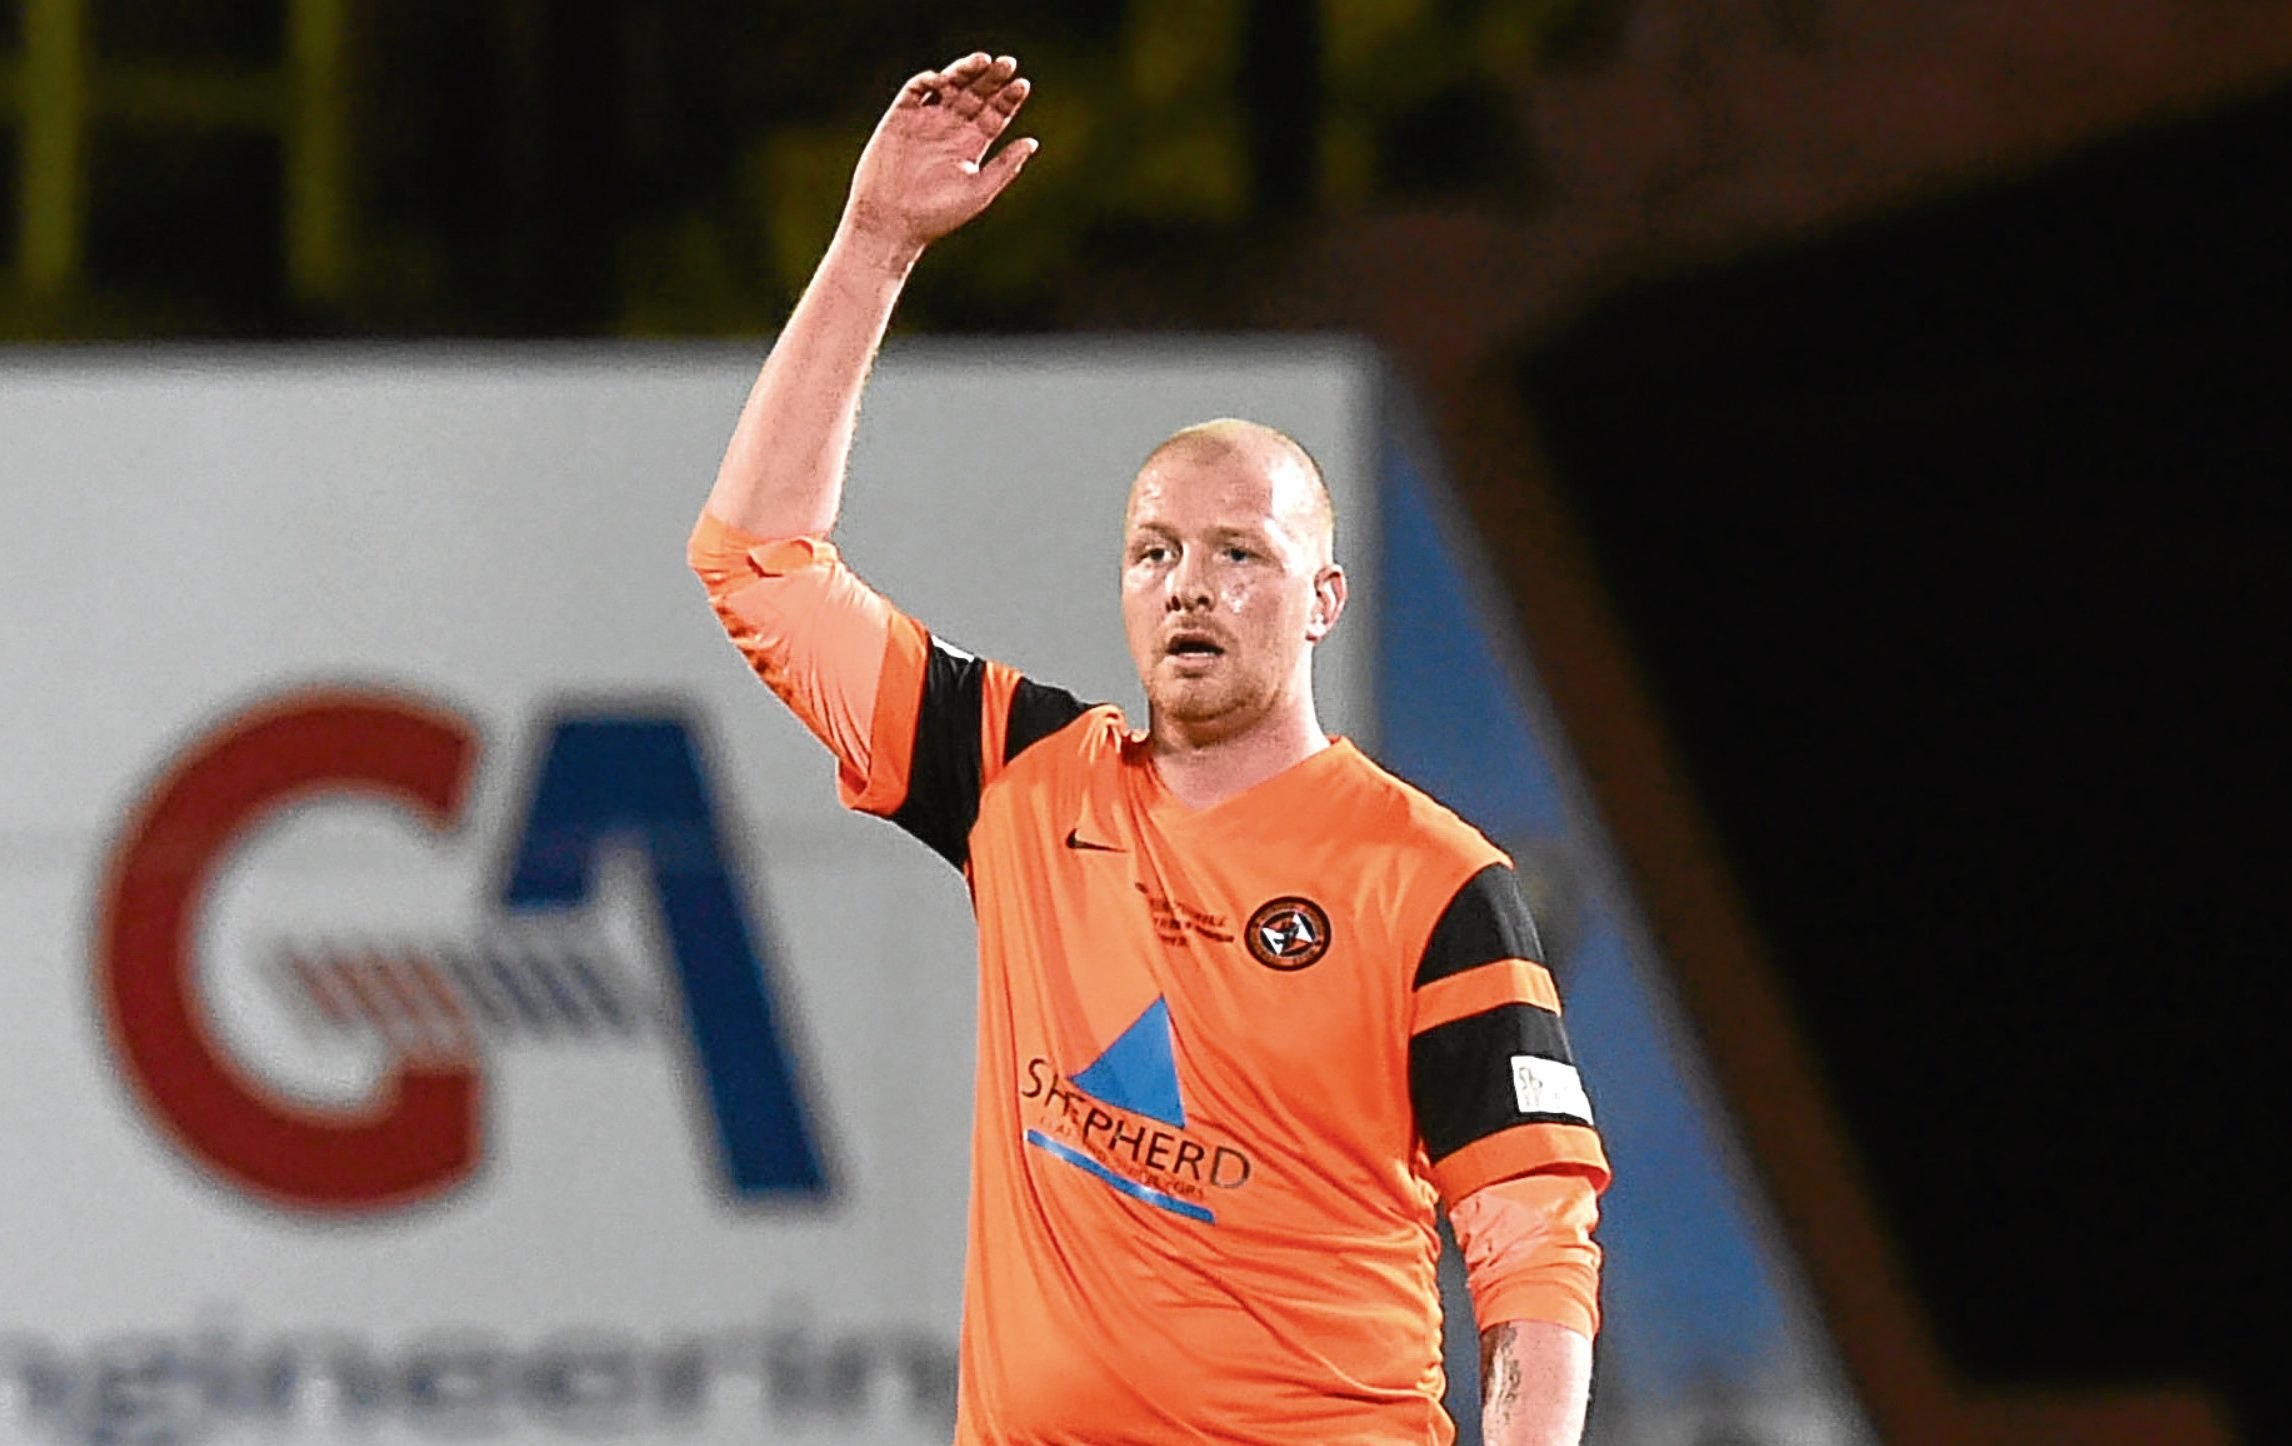 Garry Kenneth was delighted to play in front of Arabs at Sean Dillon's testimonial